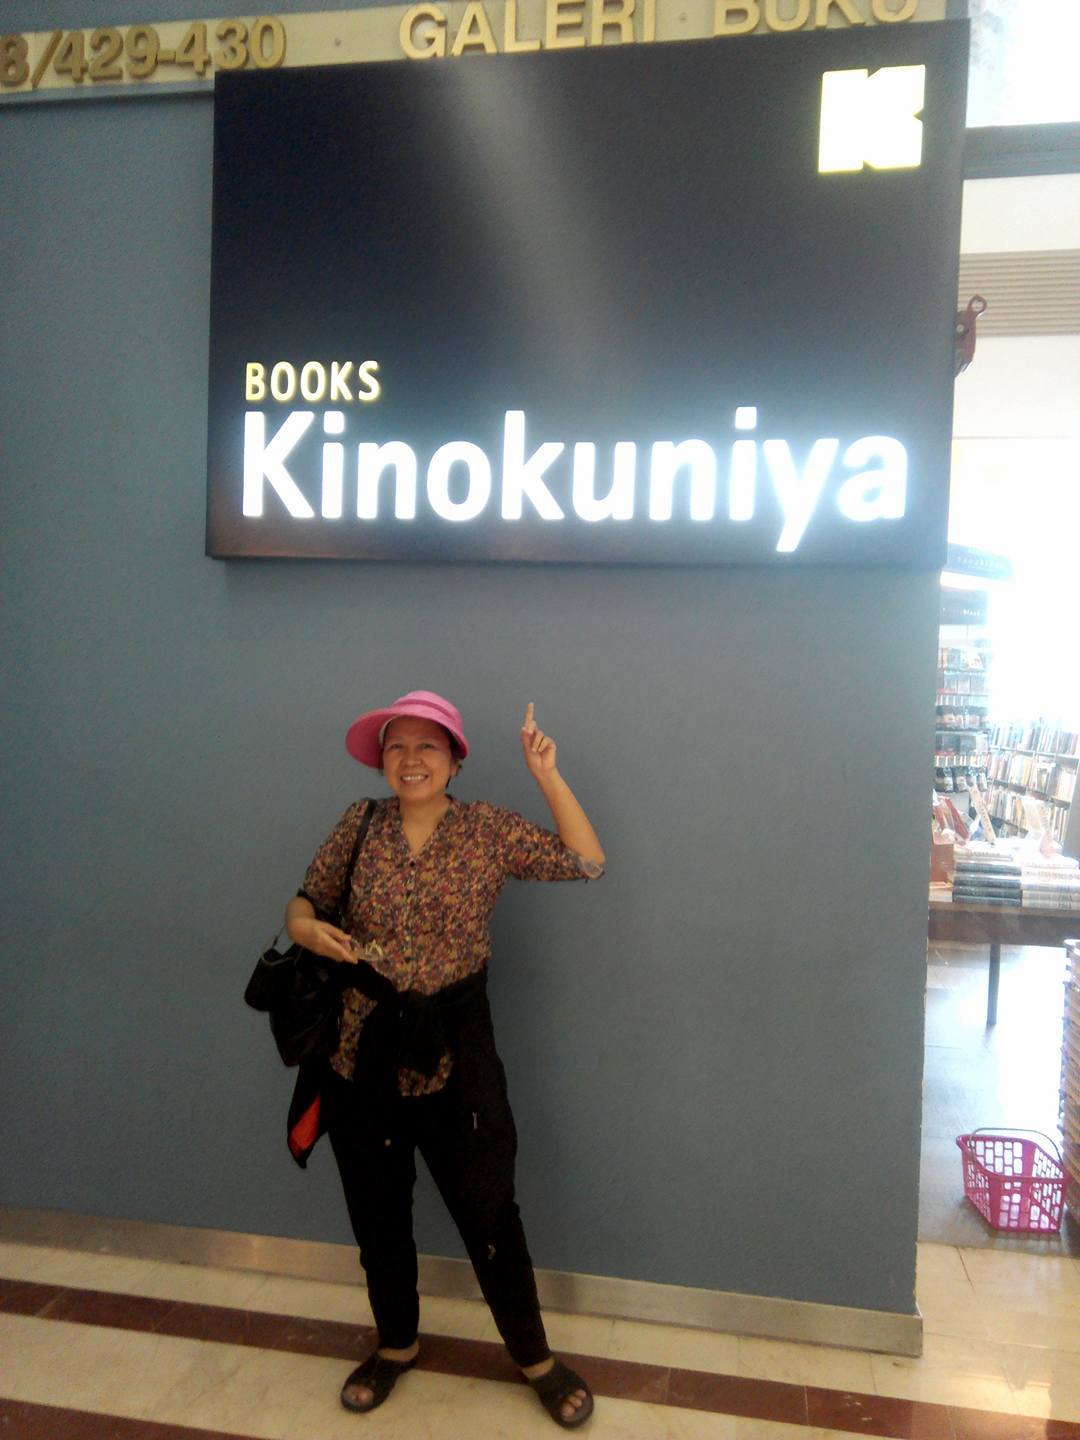 Am curious! What does this word Kinokunia mean?